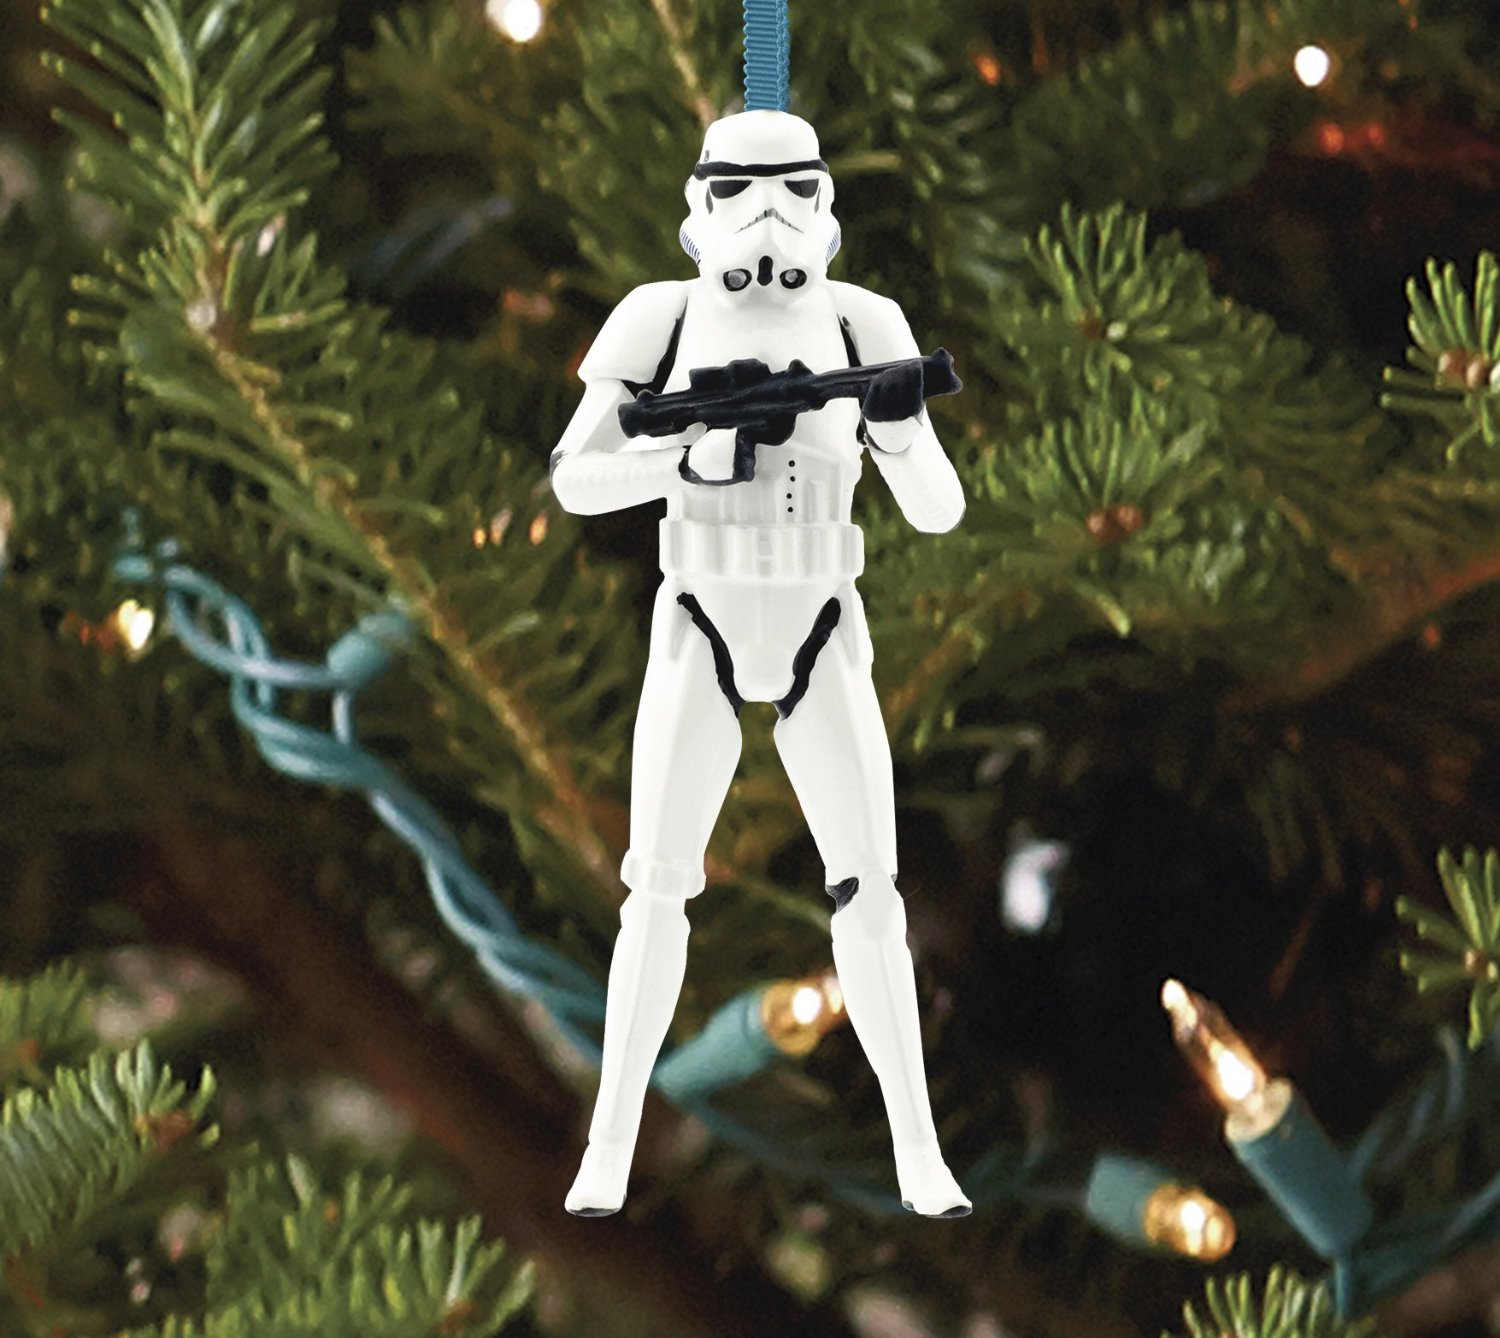 Star Wars Storm Trooper Christmas Ornament